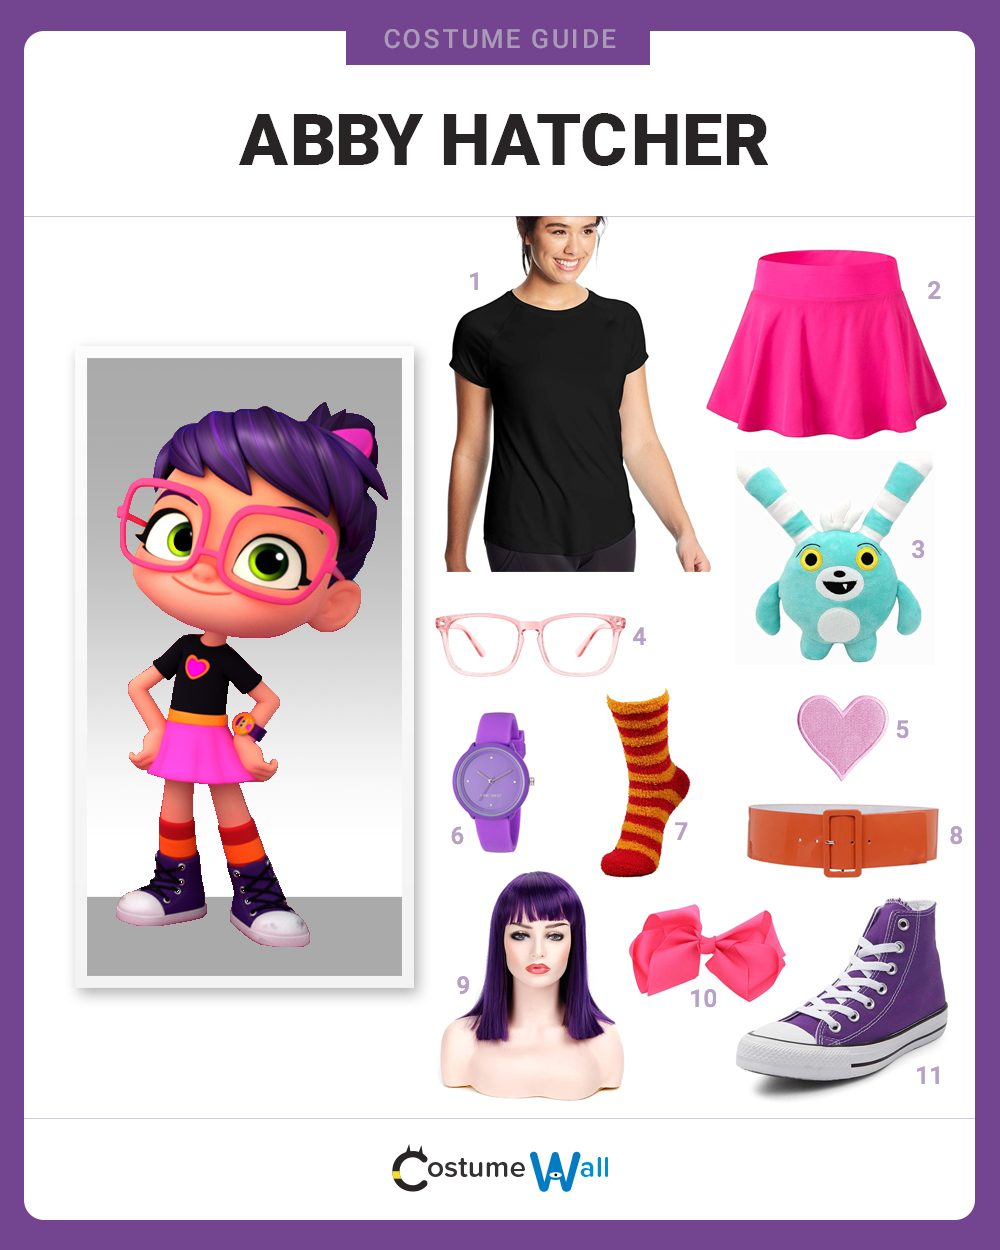 Abby Hatcher Costume Guide